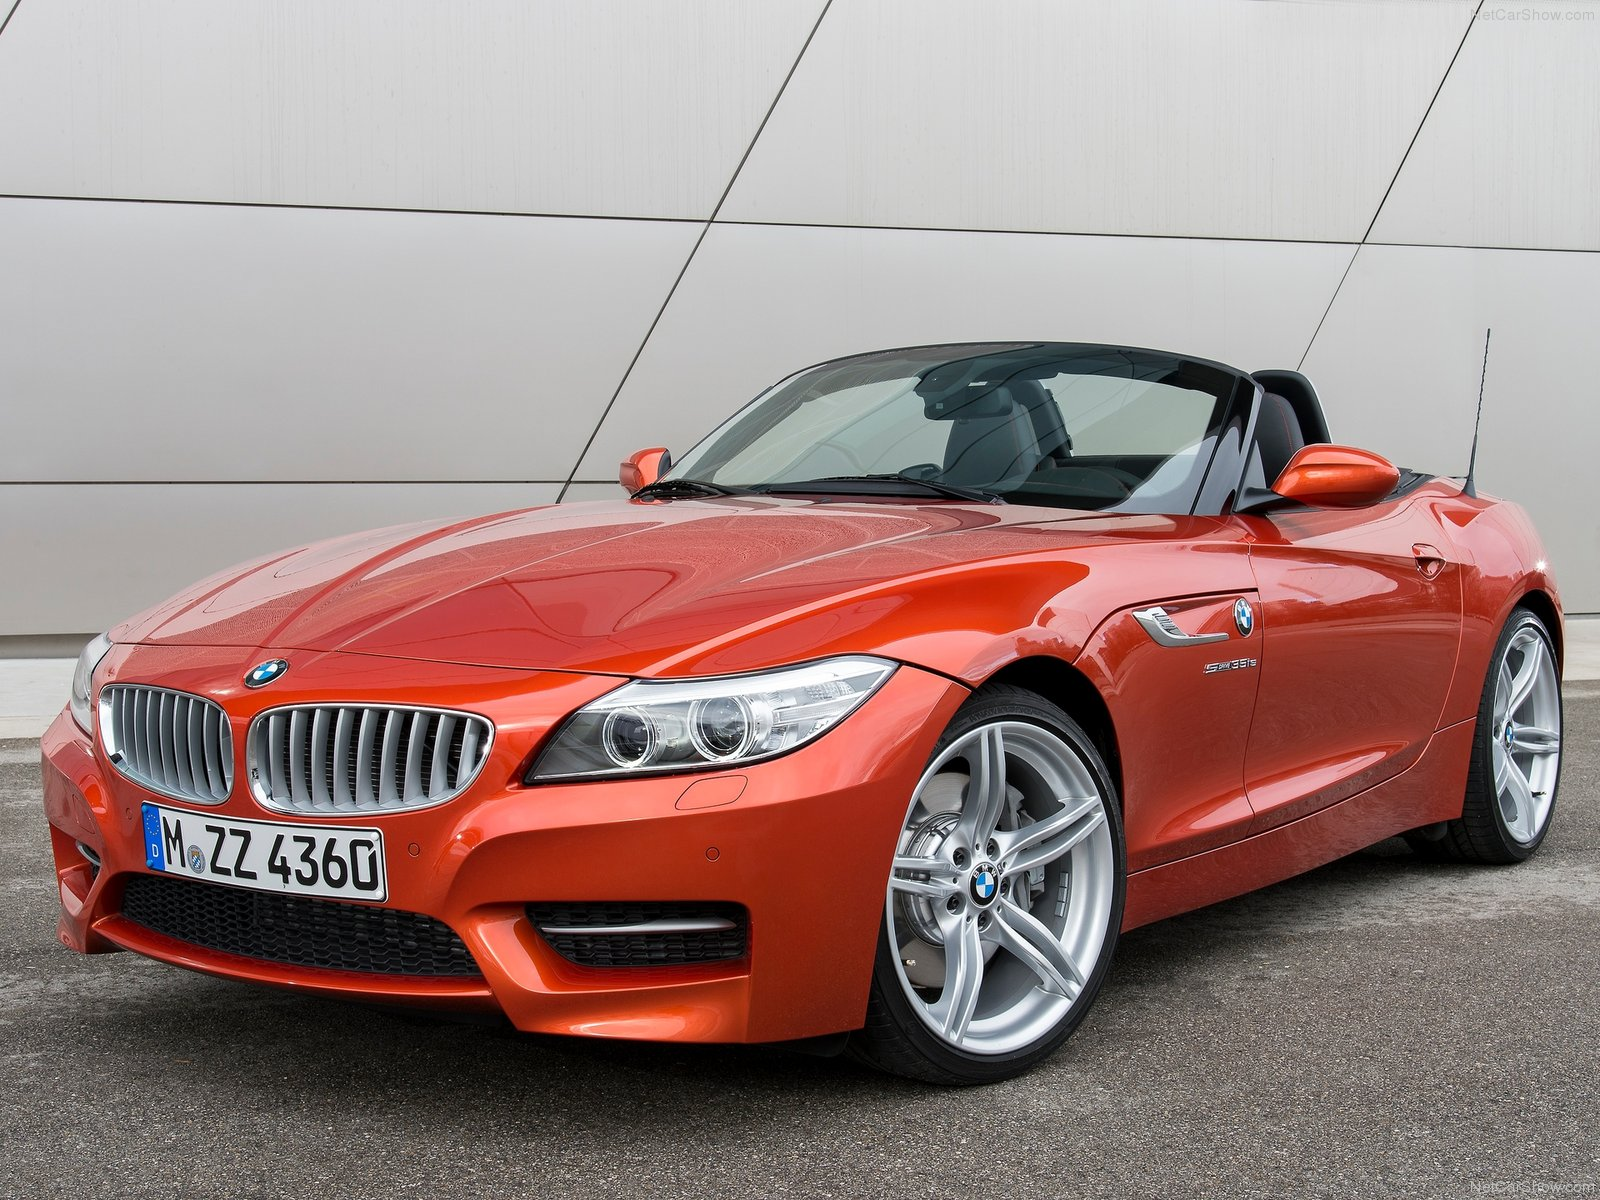 new car release april 20142014 BMW Z4 Roadster Review Spec Release Date Picture and Price